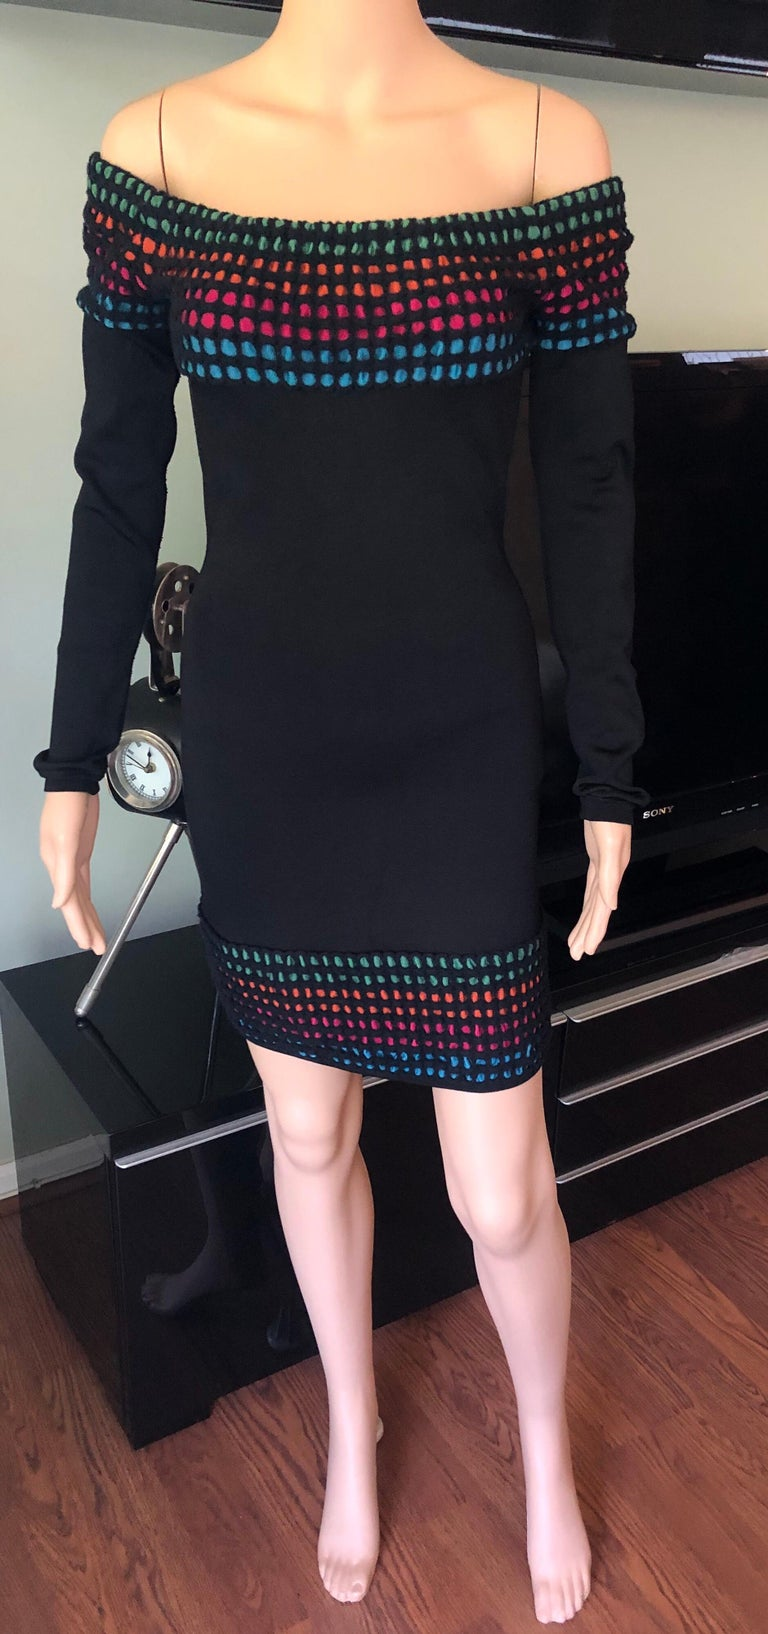 Azzedine Alaia Vintage Off the Shoulder Bodycon Dress M  Alaia bodycon dress with long sleeves, rainbow honeycomb knit accents on collar shoulders and bottom, and zip closure at back.